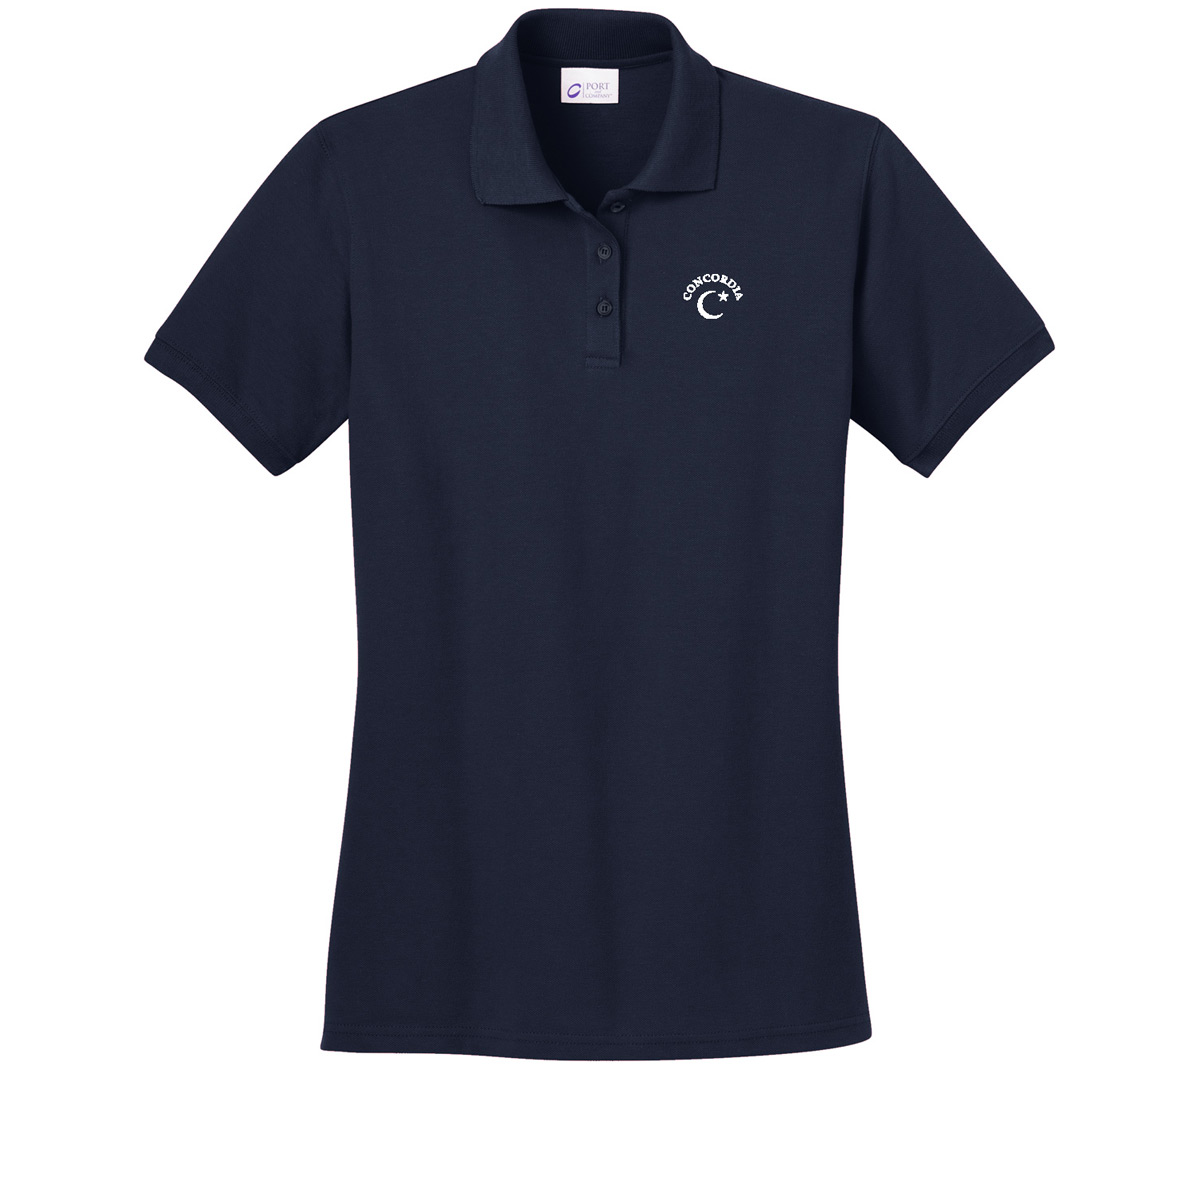 CONCORDIA - Women's COTTON POLO